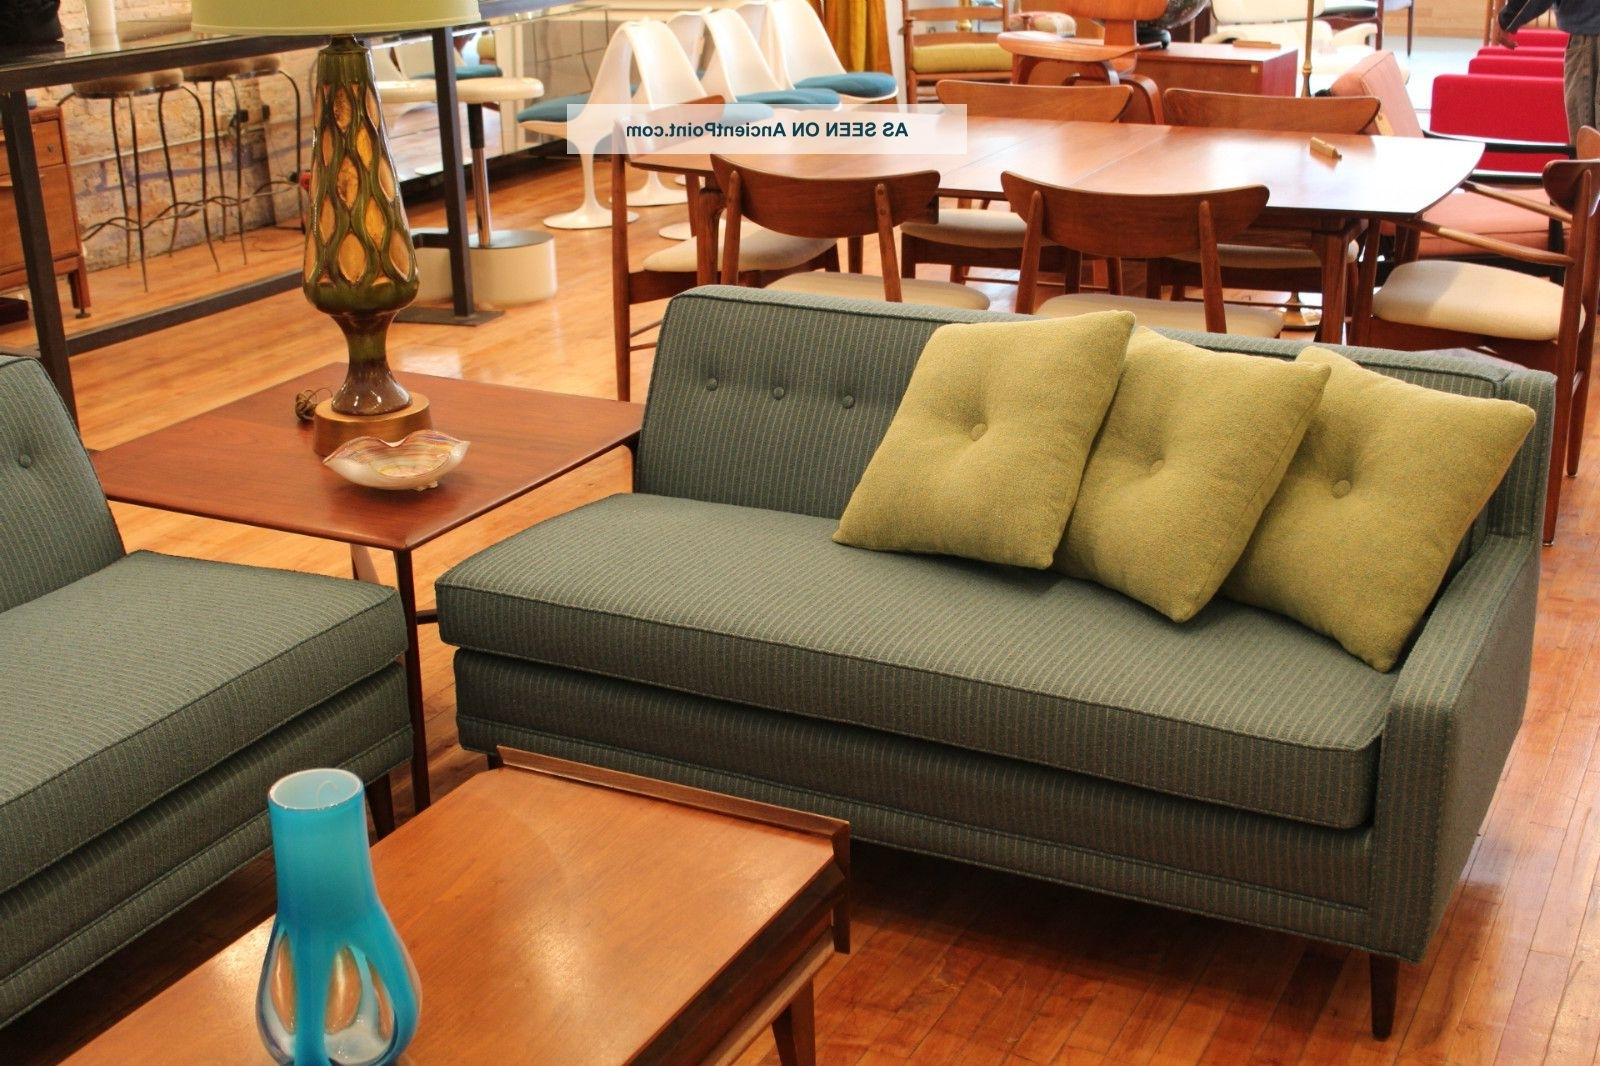 Vintage Sectional Sofas within Well-known Vintage Pin - Striped Mid Century Mod Sectional Sofa Milo Baughman